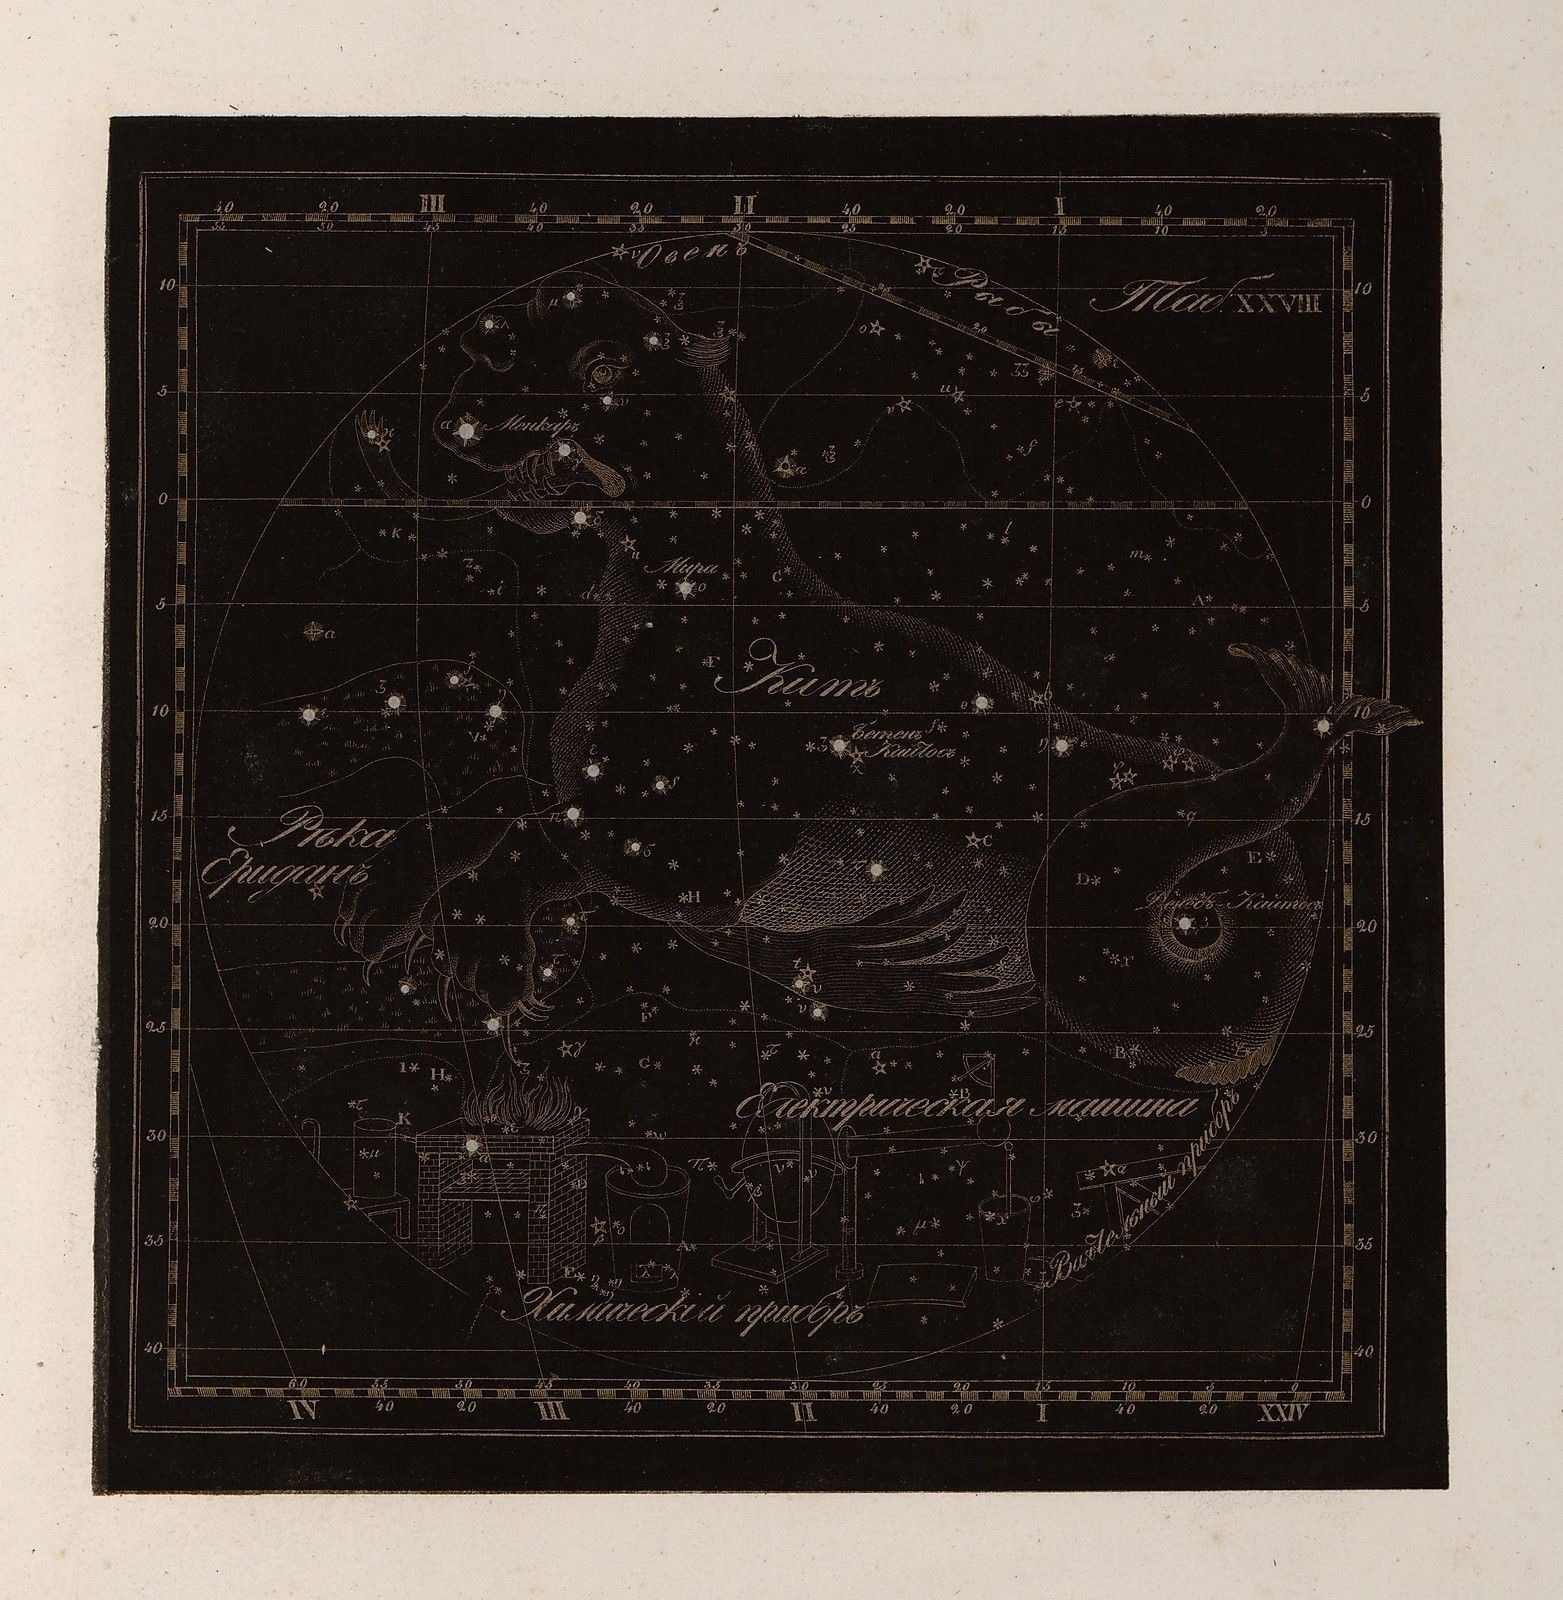 Primary image for 1829 RUSSIAN CELESTIAL atlas Cetus Sea Monster whale Reissig constellation 28